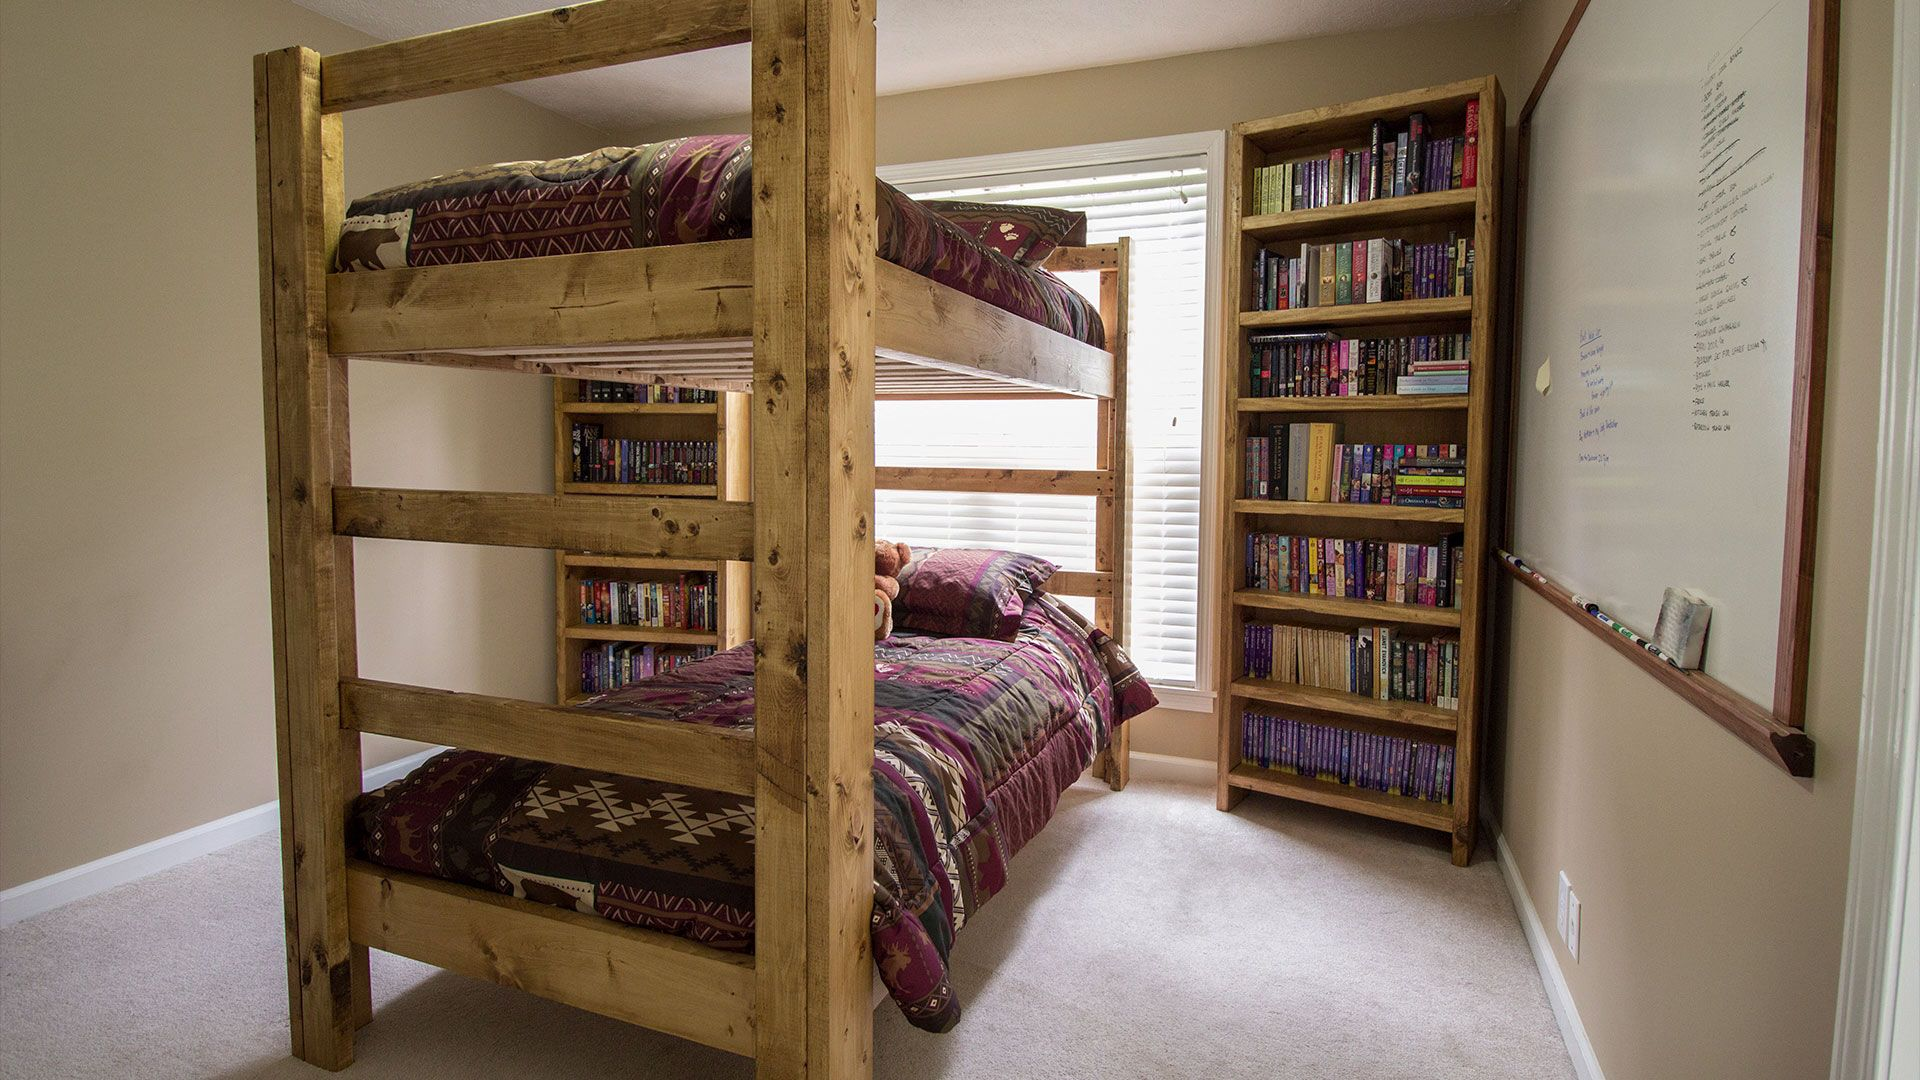 Loft bed ideas for boys  xbookcase  Bunkbeds  Pinterest  Bunk bed Bedrooms and